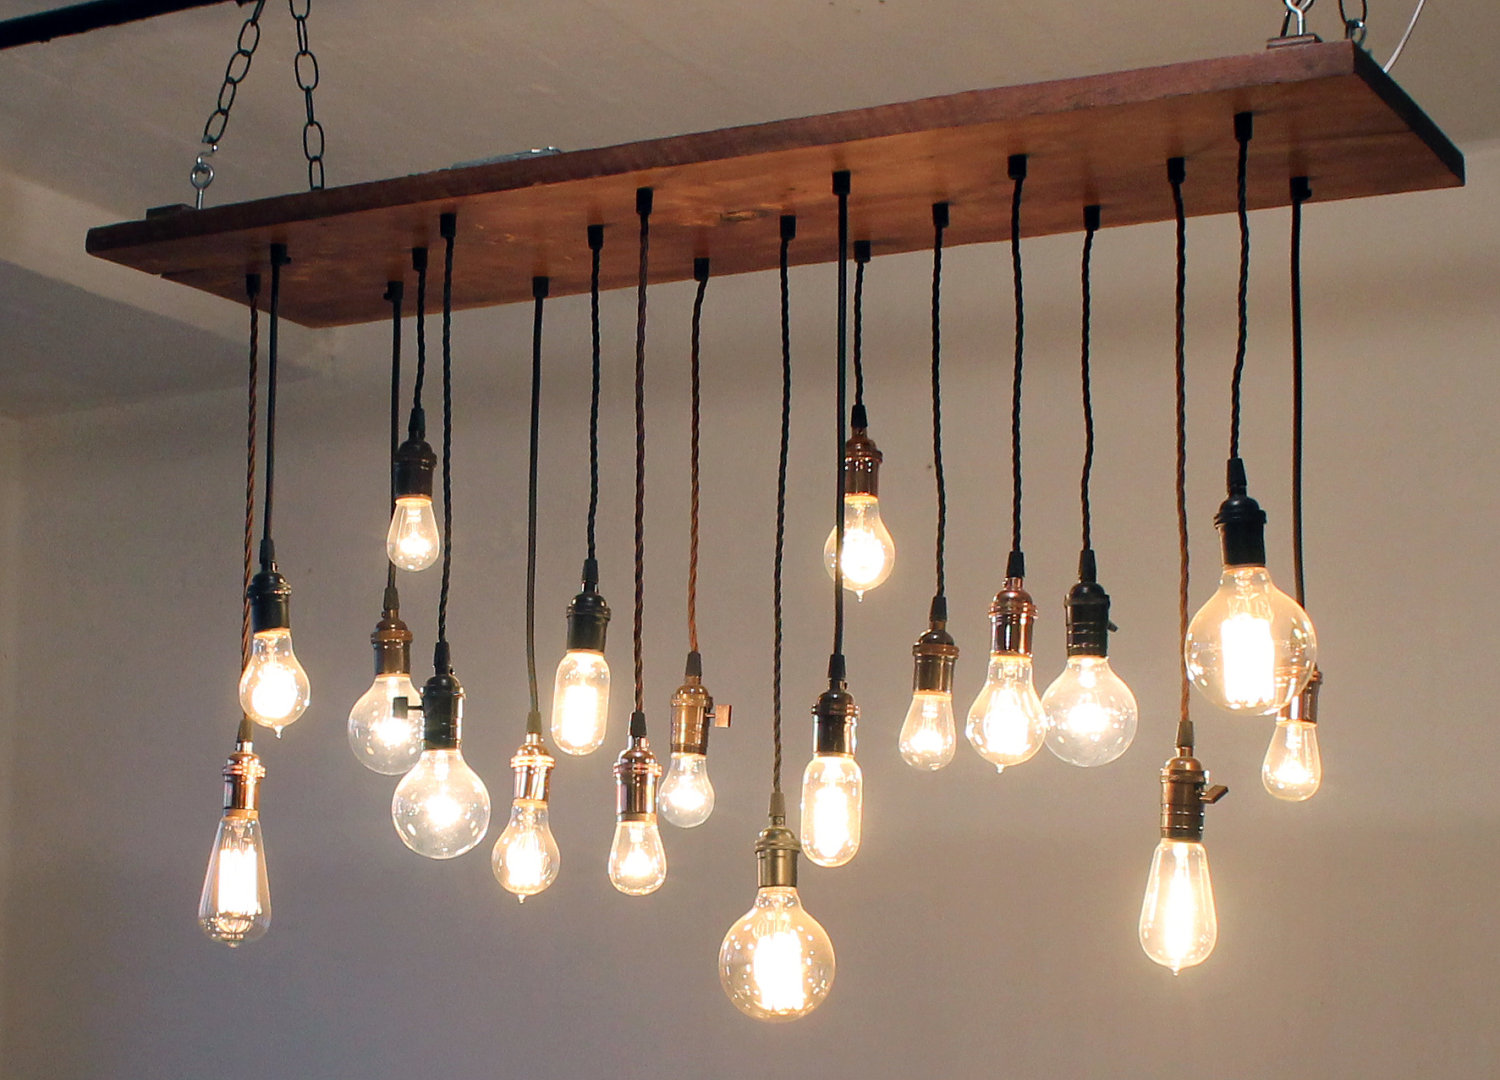 Oversized historic light bulbs the light house gallery read our latest posts aloadofball Gallery